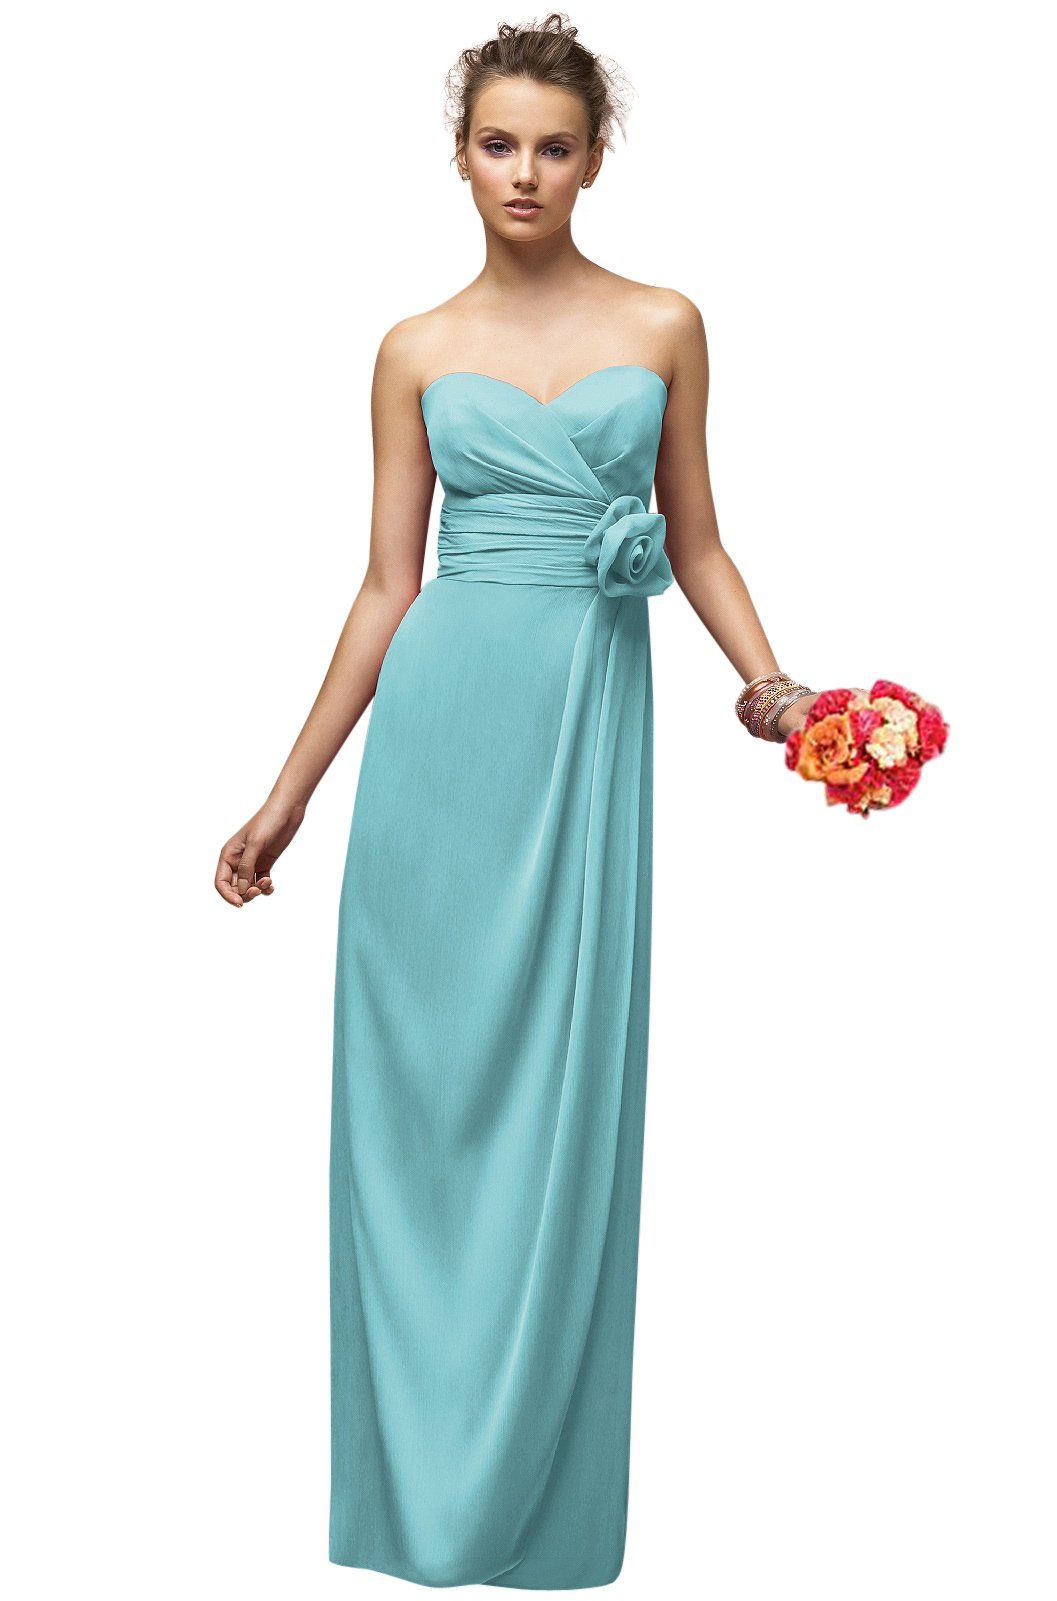 Lela Rose Lx150 Bridesmaid Dress | Weddington Way | Wedding stuff ...